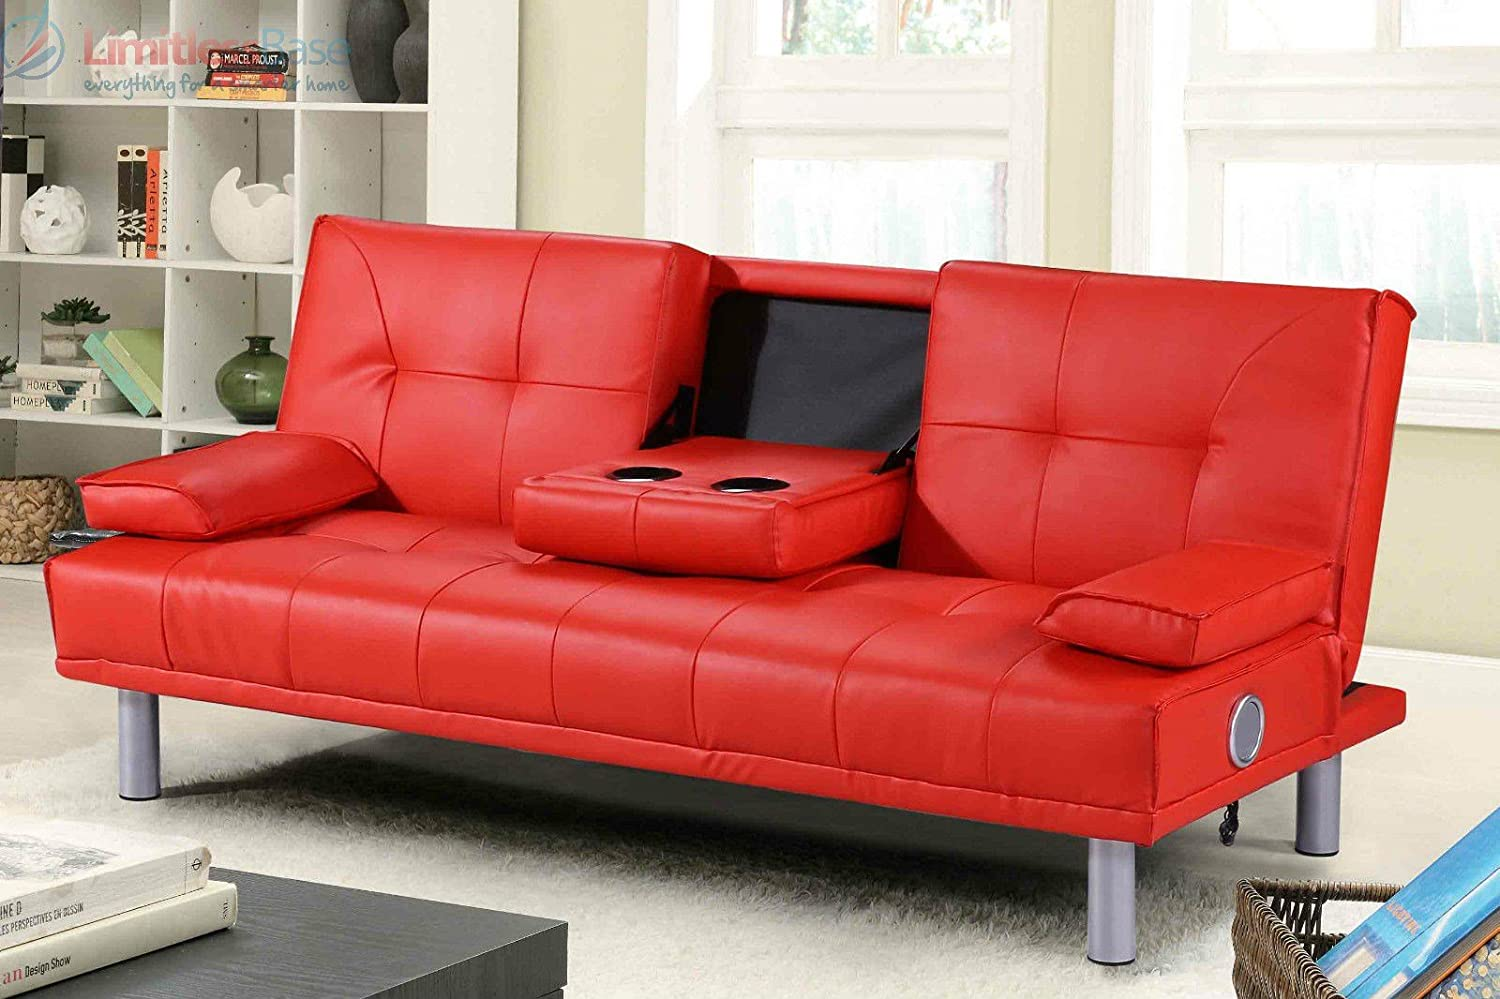 Modern Designer 3 Seater Faux Leather Sofa Bed Built In Bluetooth Speakers  In 4 Colours (Red): Amazon.co.uk: Kitchen & Home